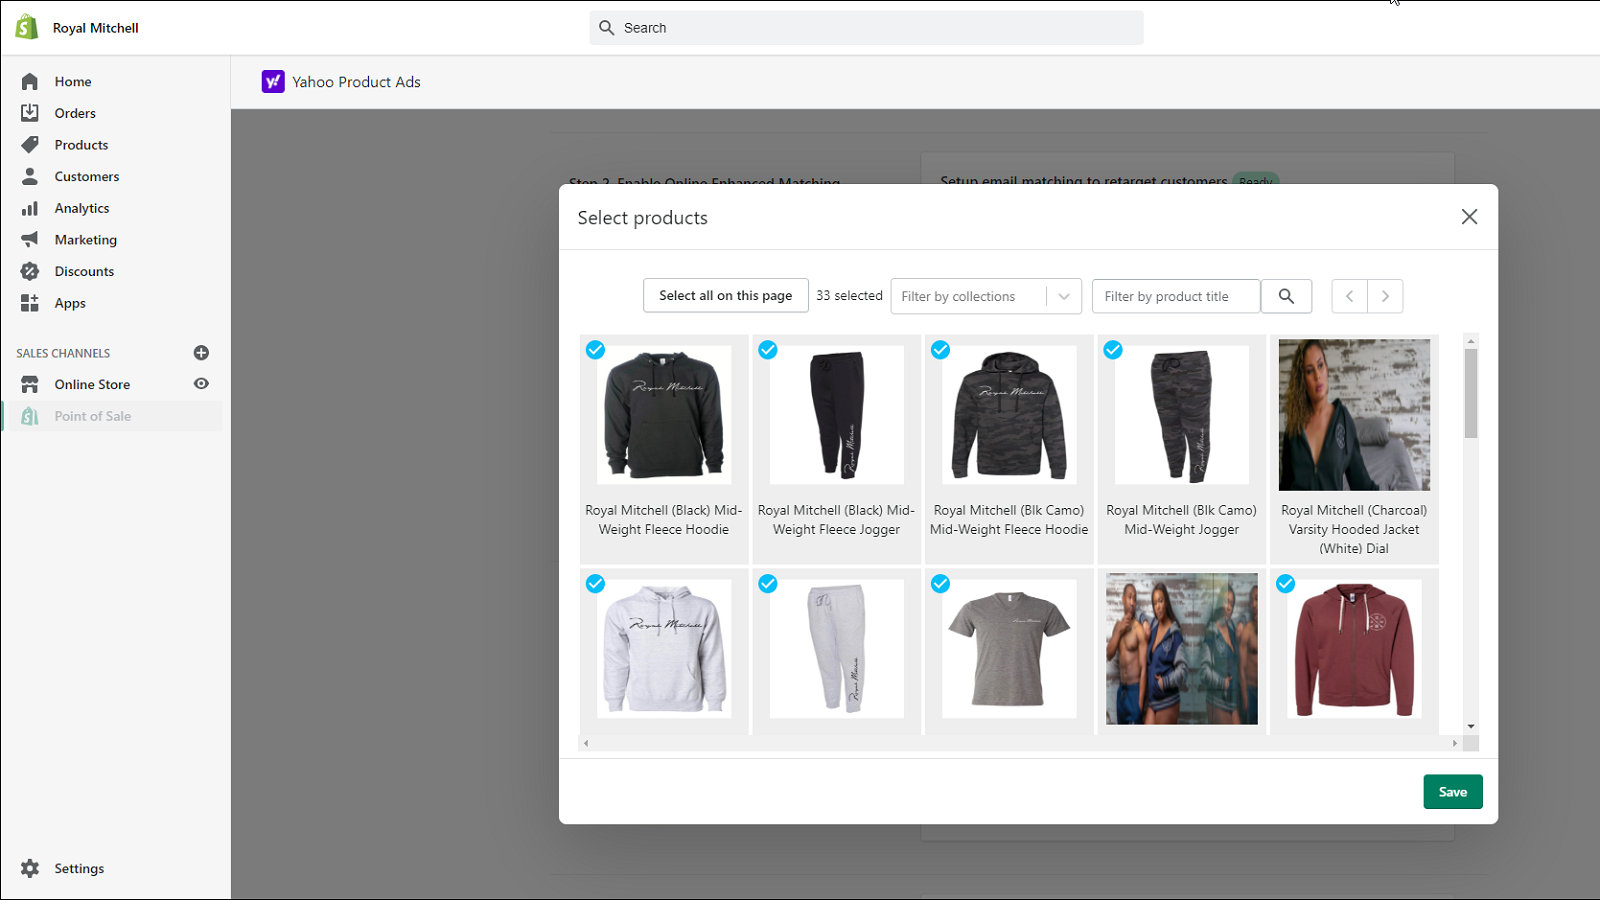 Select products to promote in dynamic ads